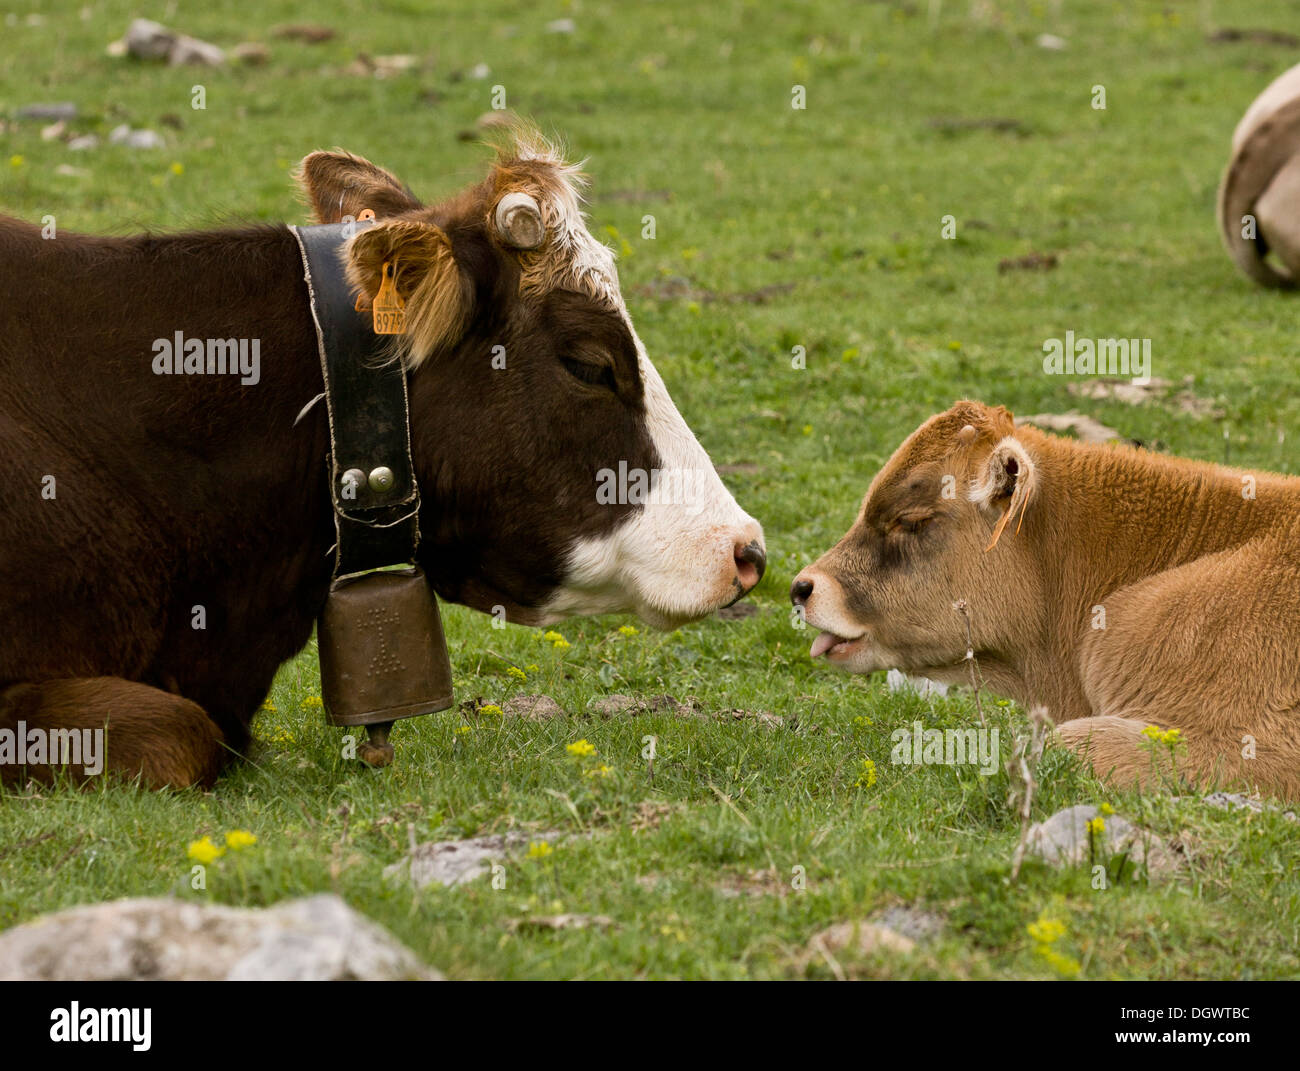 Ordesa National Park, Pyrenees - cattle grazing in the high glaciated valley. Spain. - Stock Image